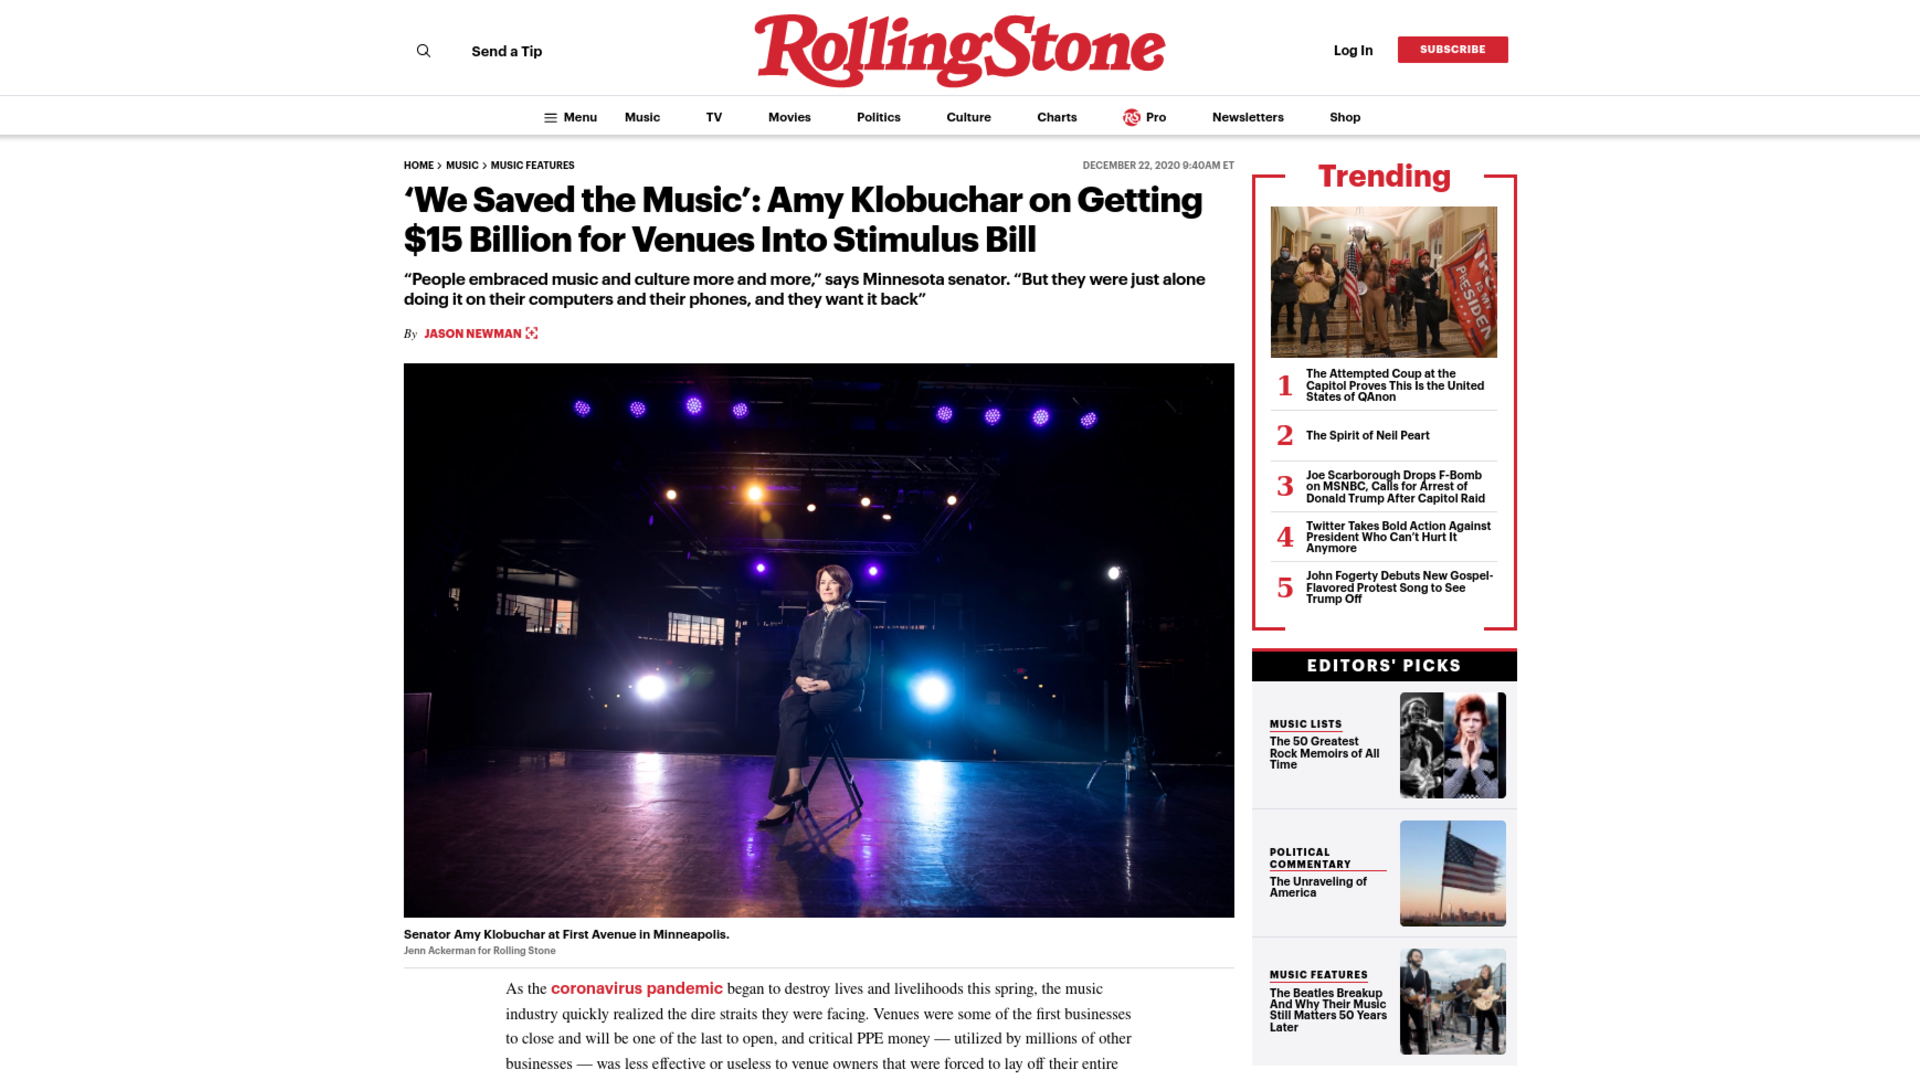 Fairness Rocks News 'We Saved the Music': Amy Klobuchar on Getting $15 Billion for Venues Into Stimulus Bill